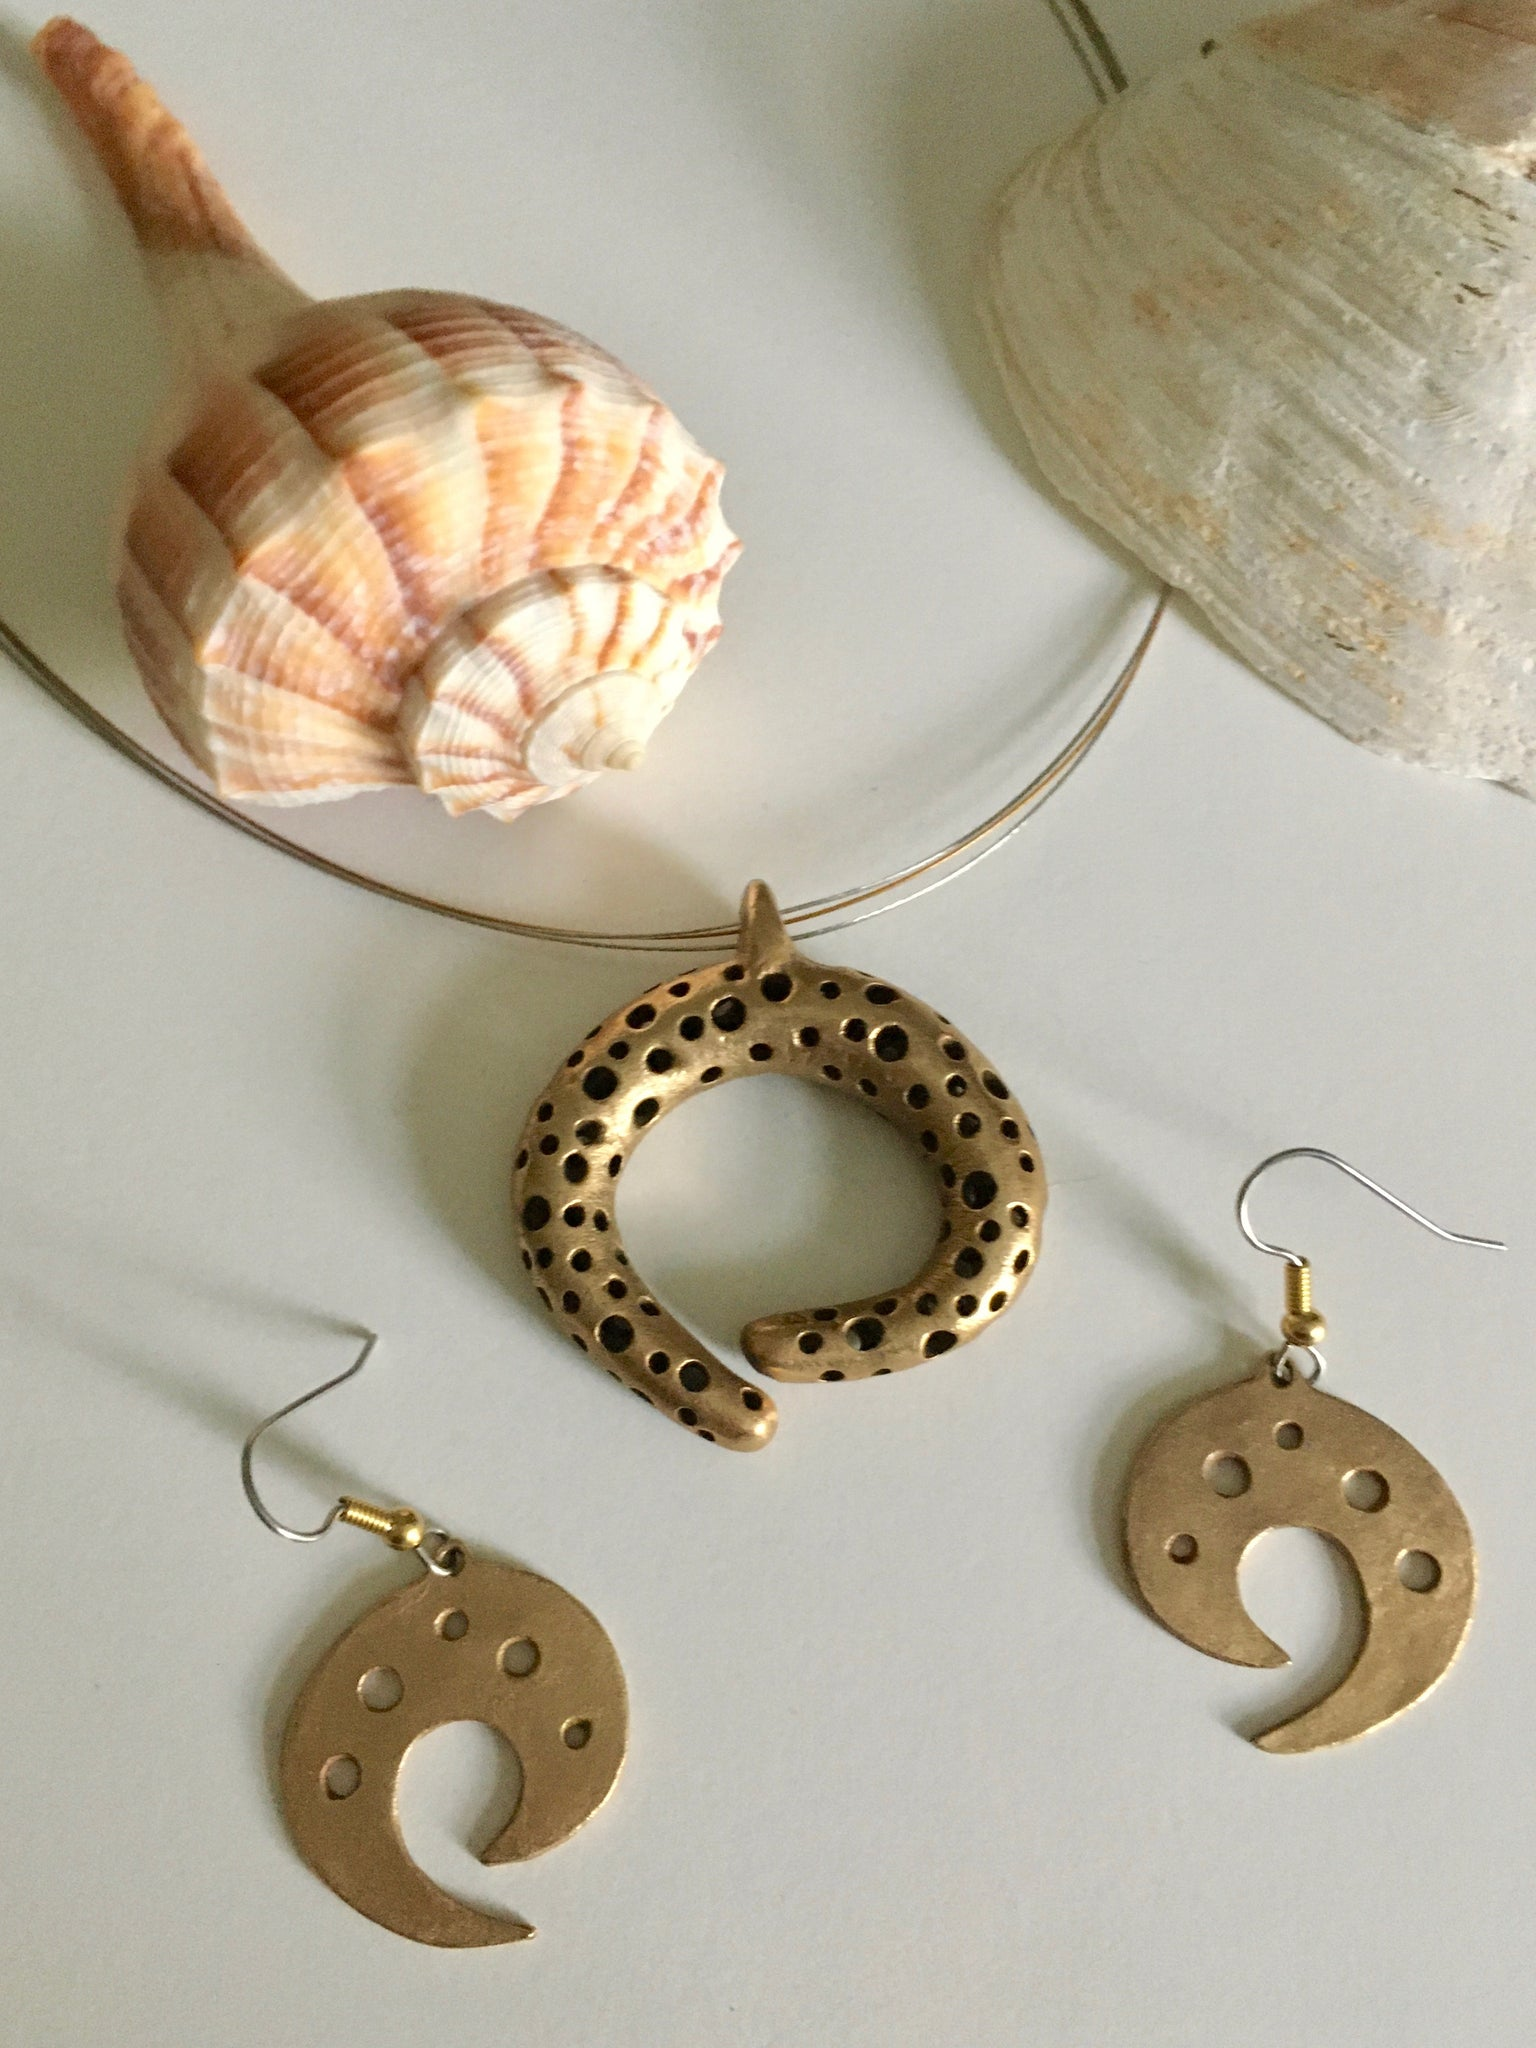 Perfect pairing of pendant and earrings